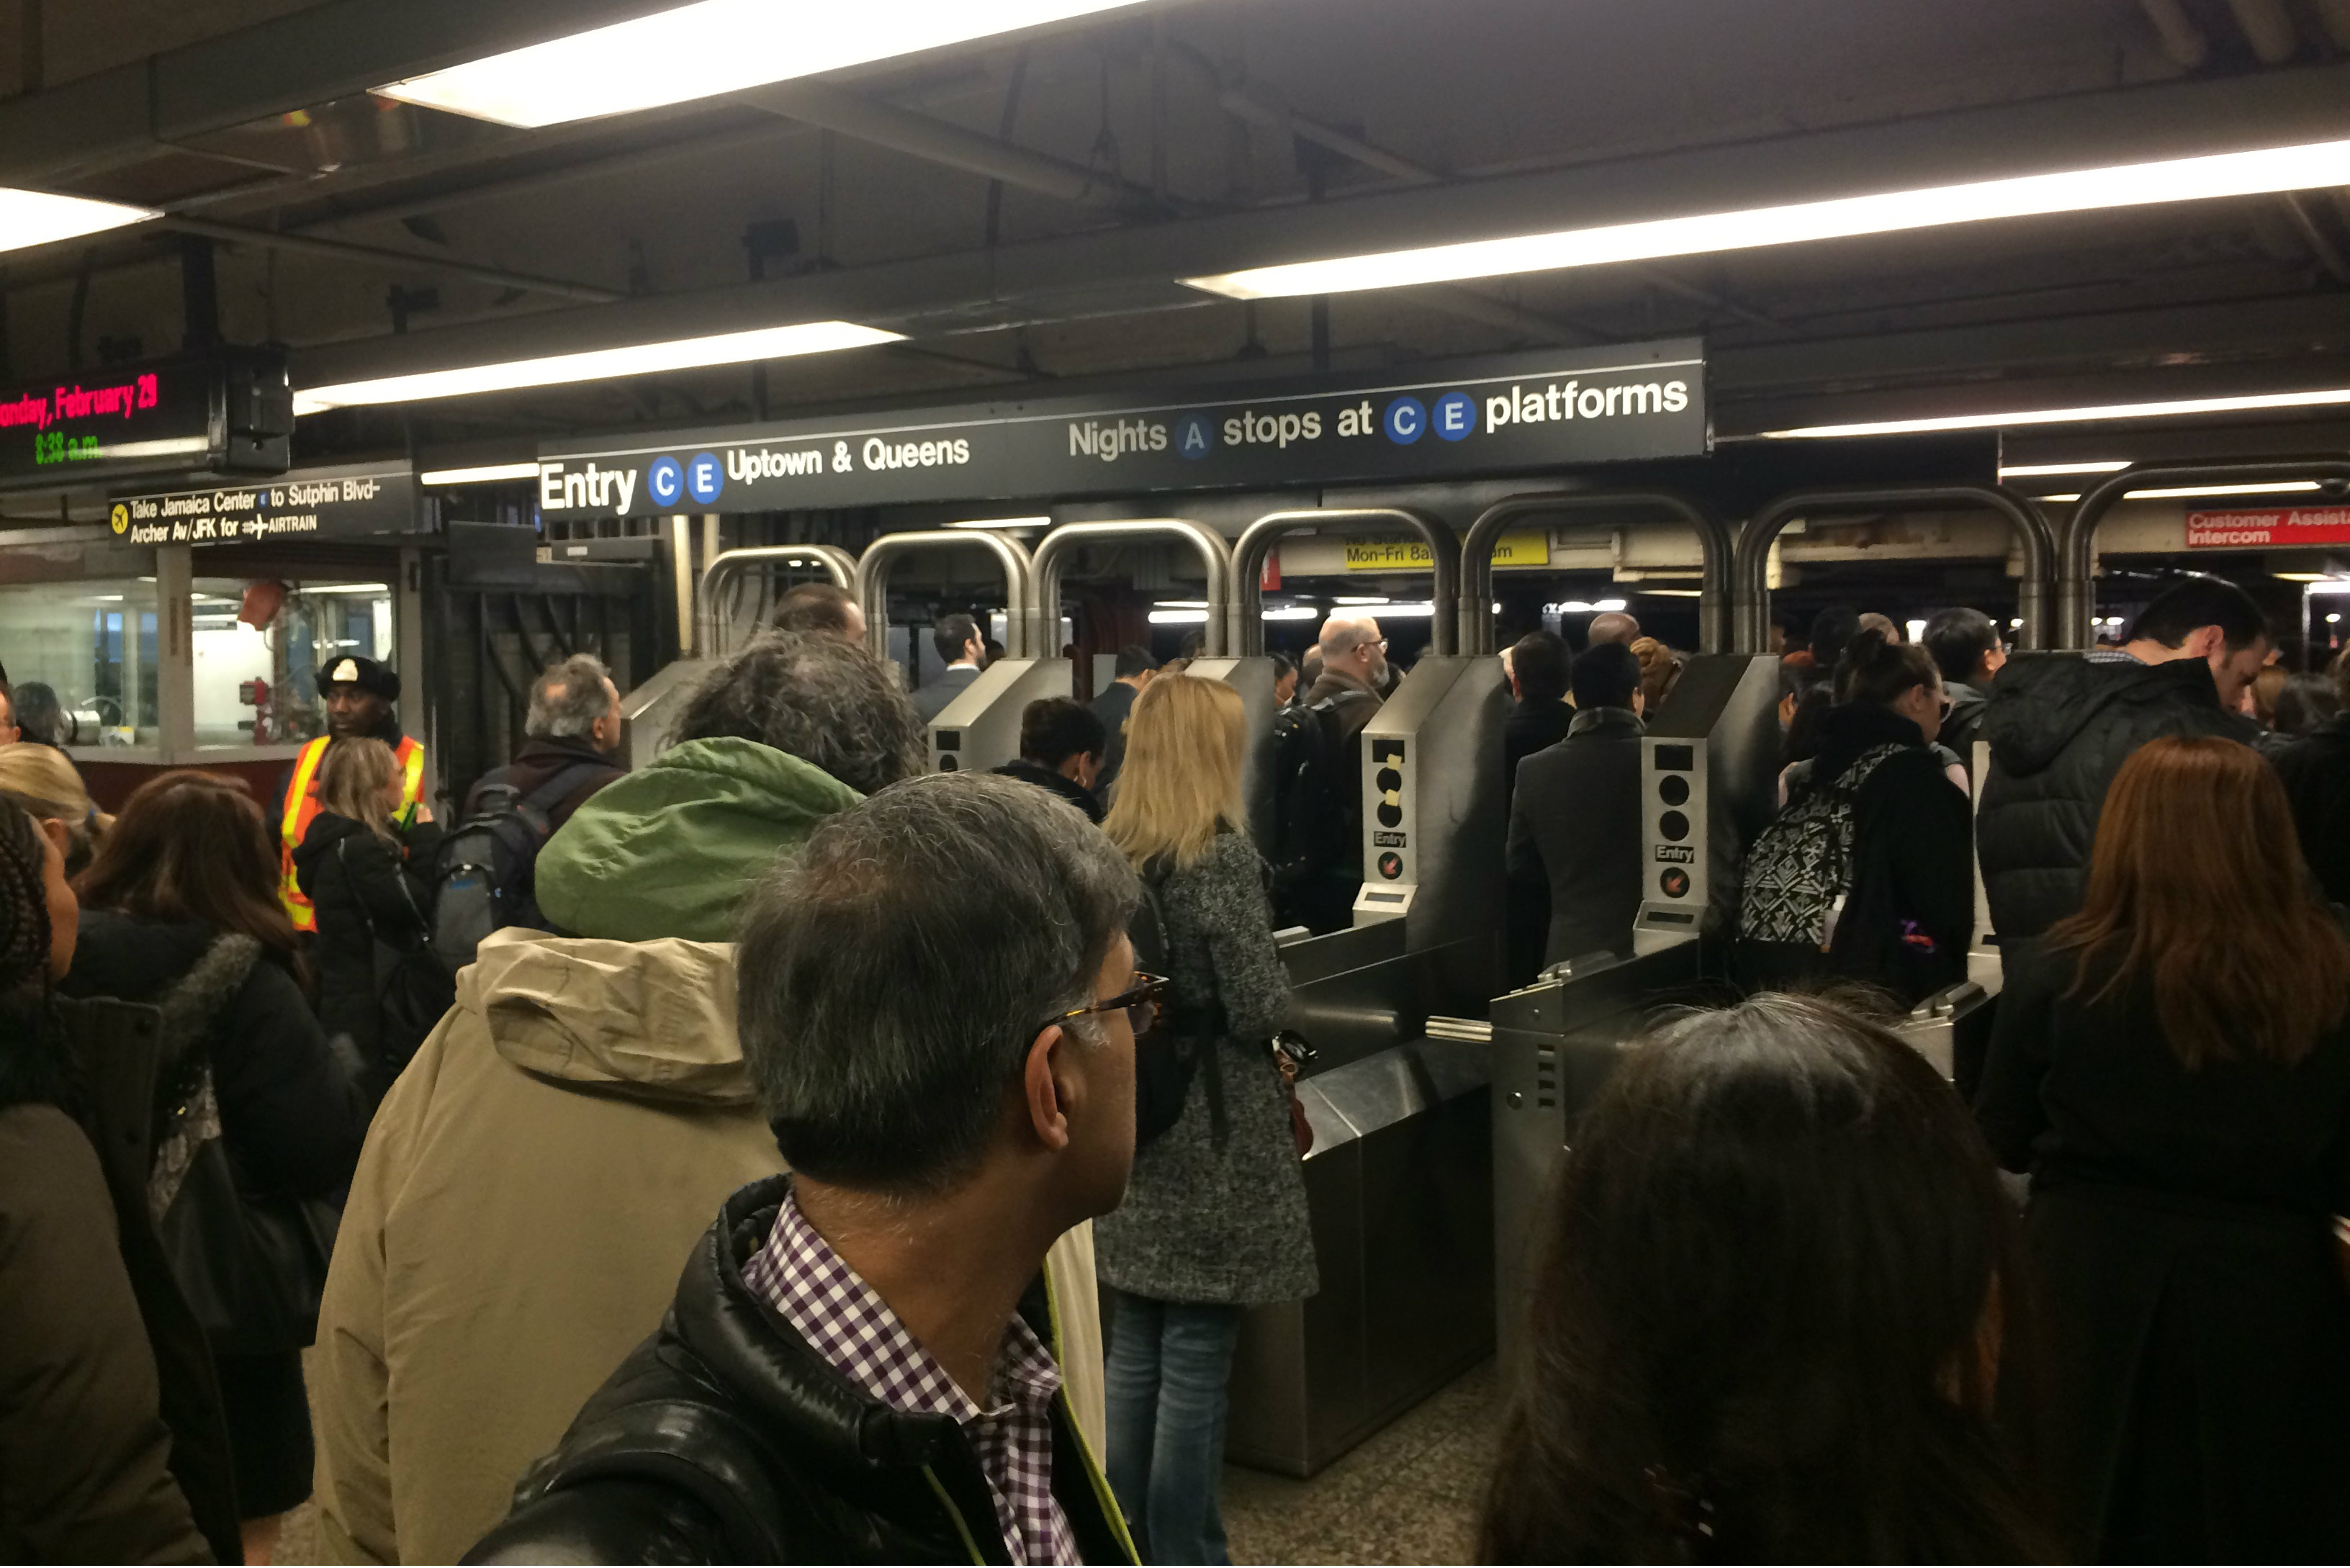 E and F Trains Delays Caused by Lingering Weekend Track Work, MTA